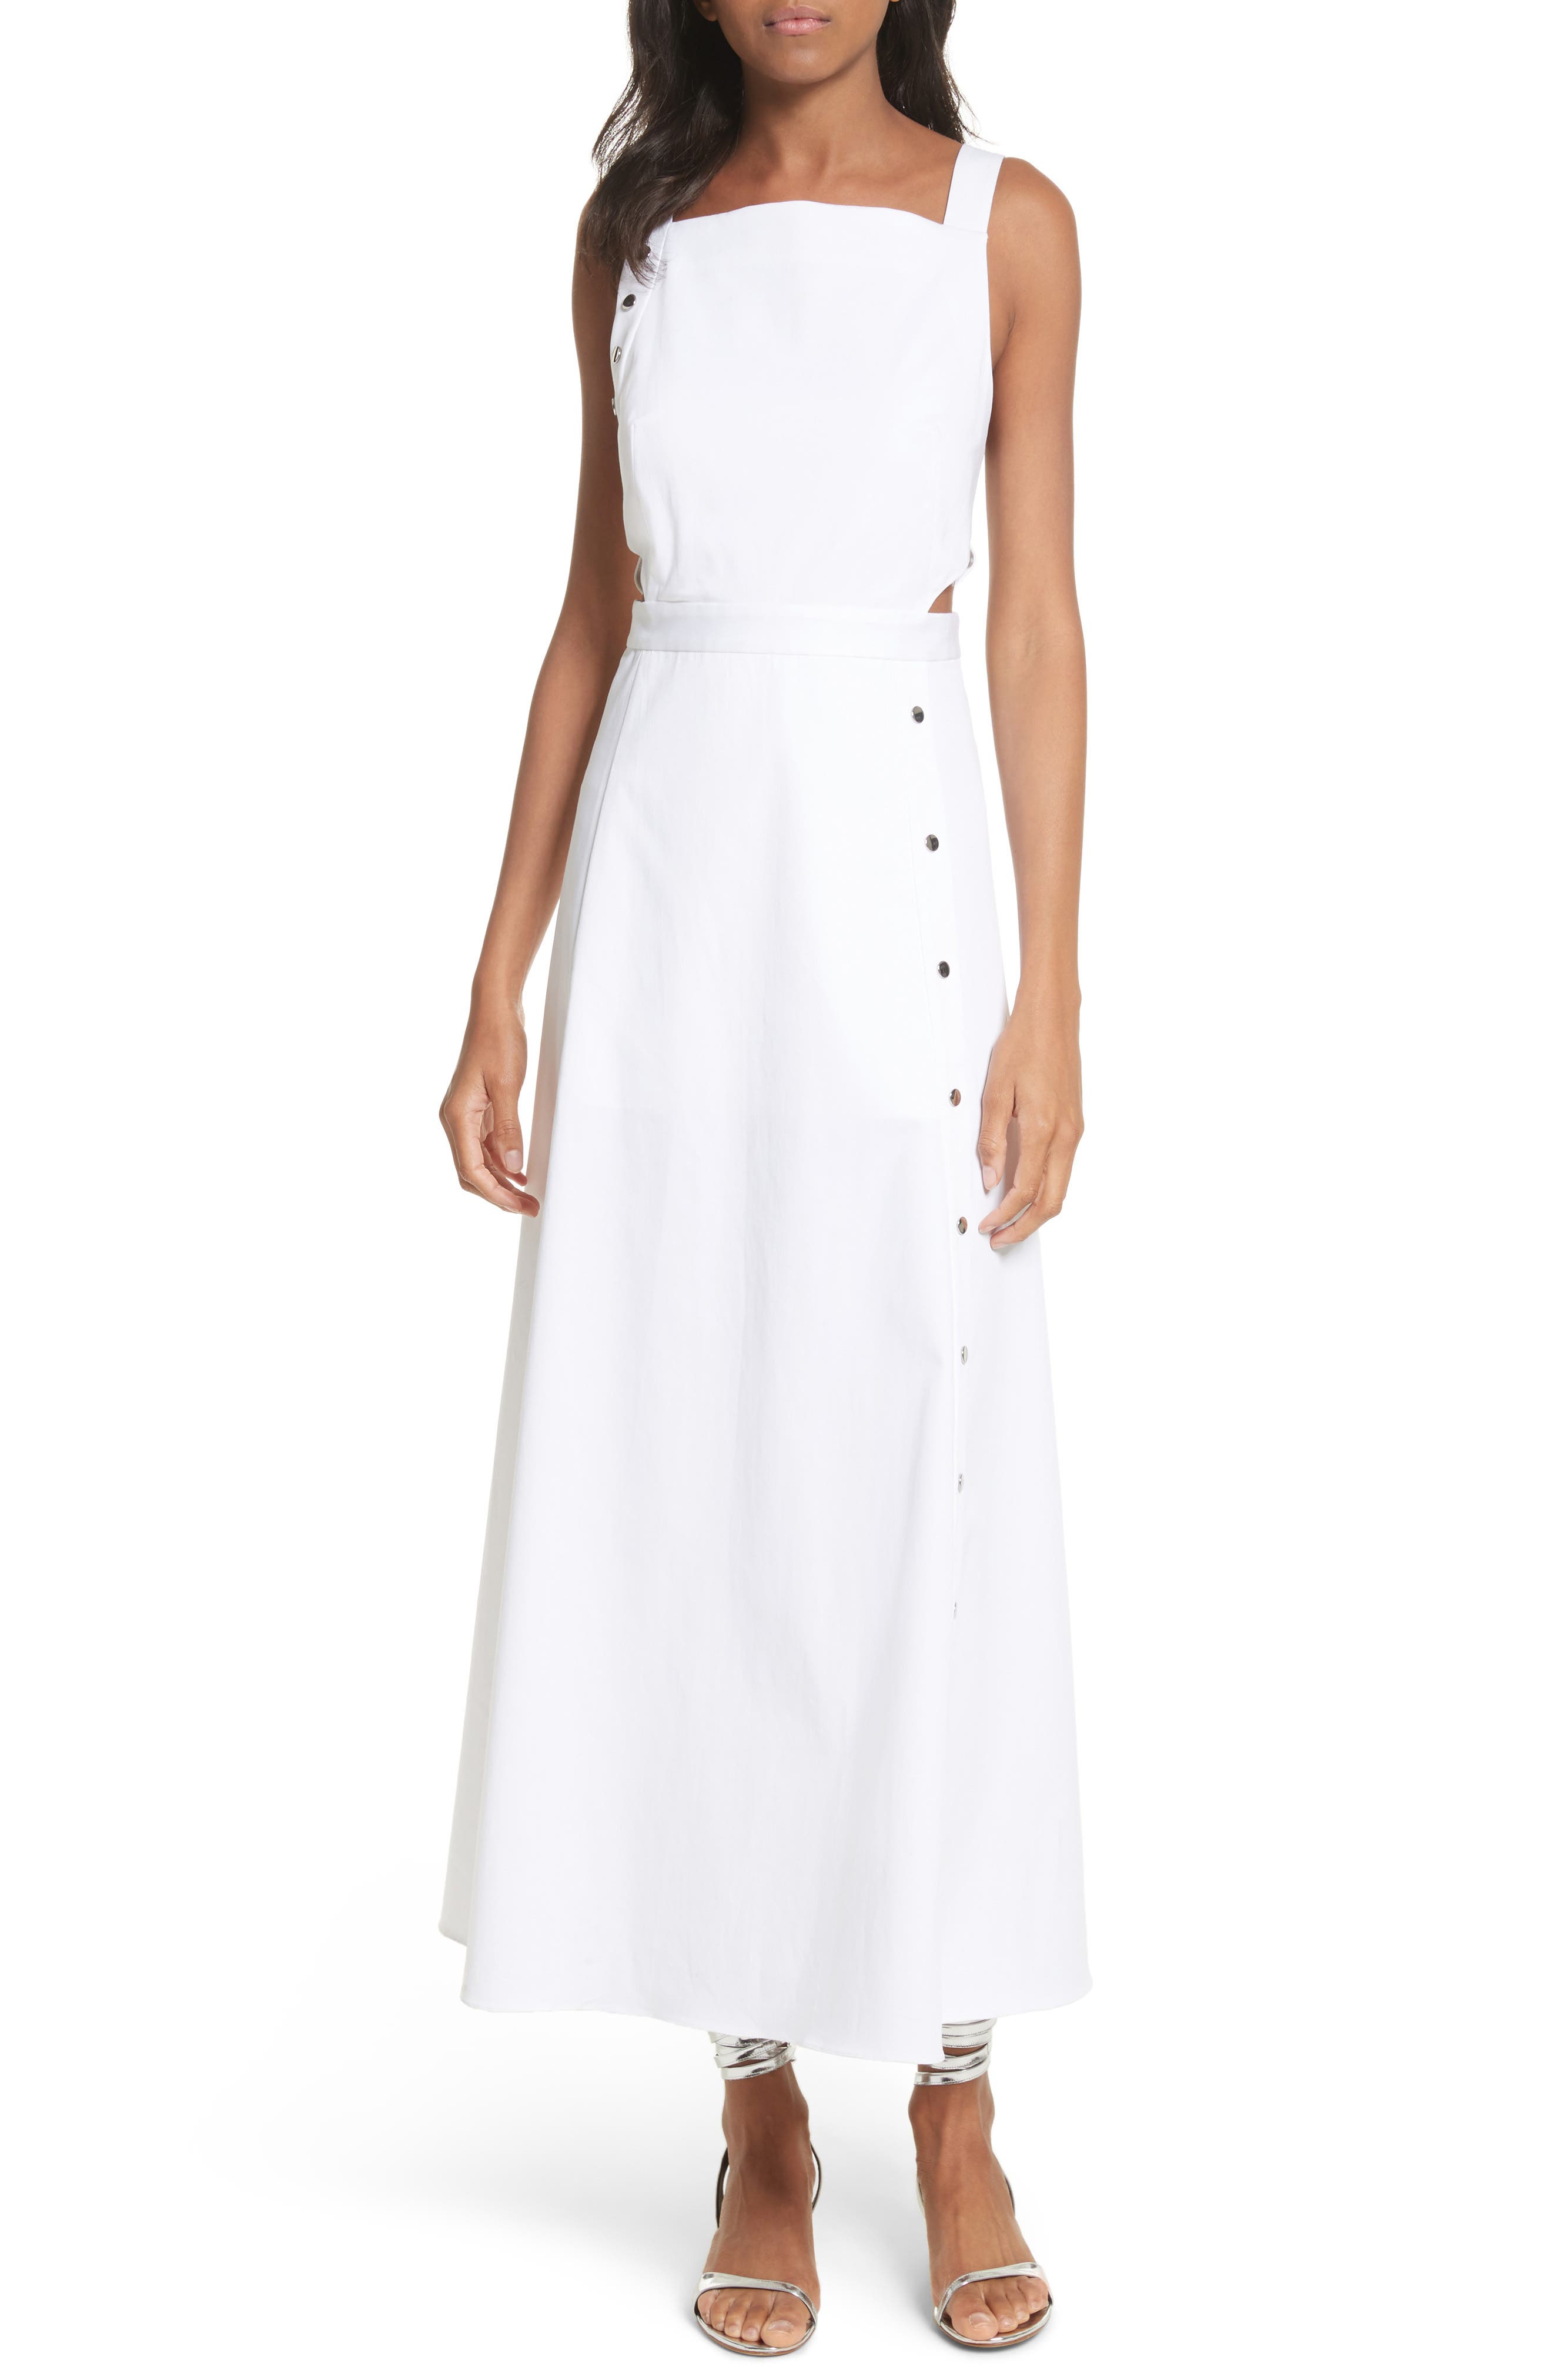 Crosby Snap Strappy Dress,                         Main,                         color, White